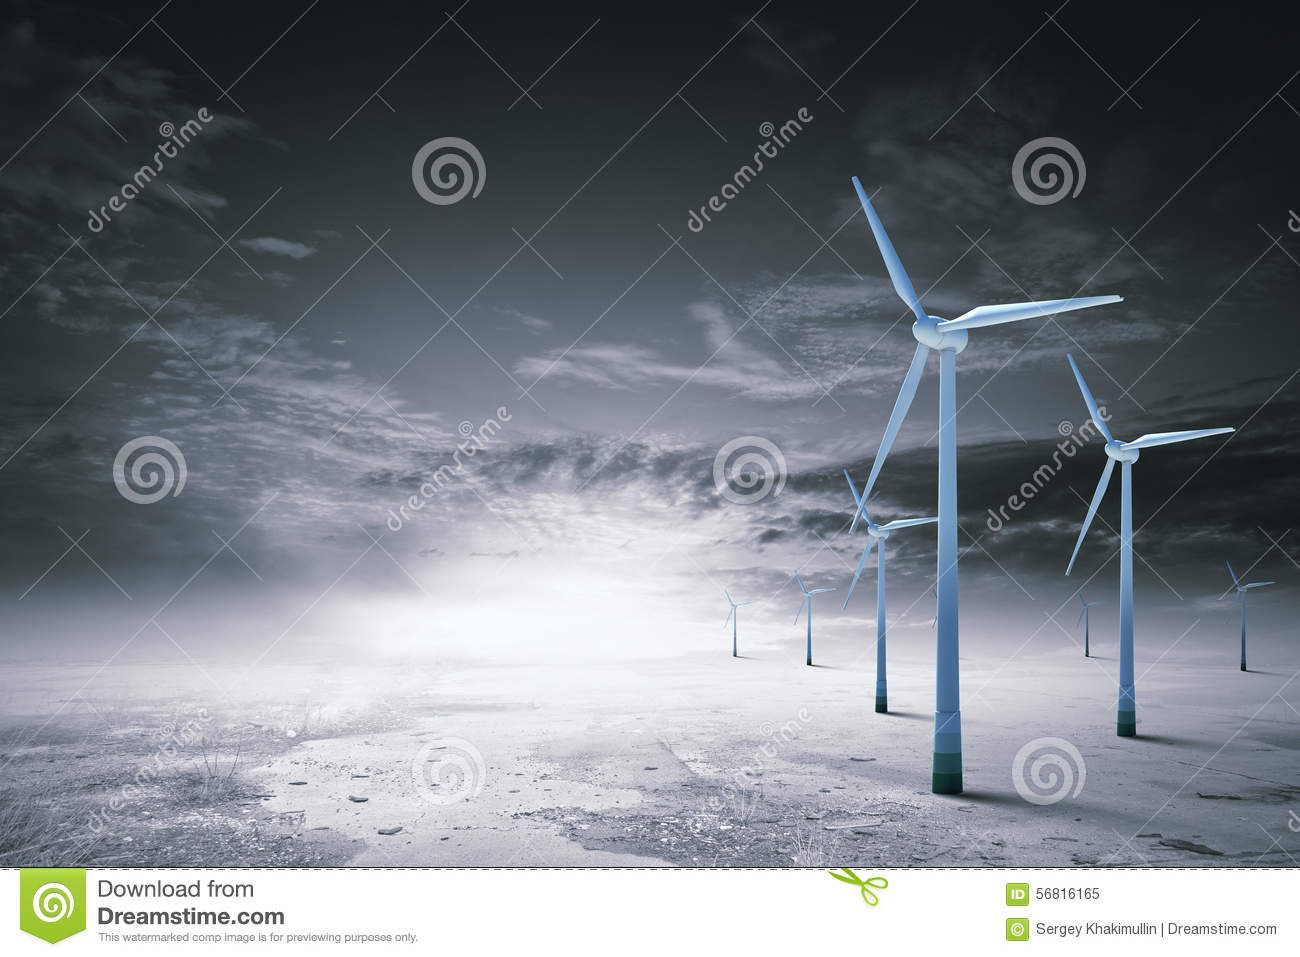 Desert winds and electrical energy essay